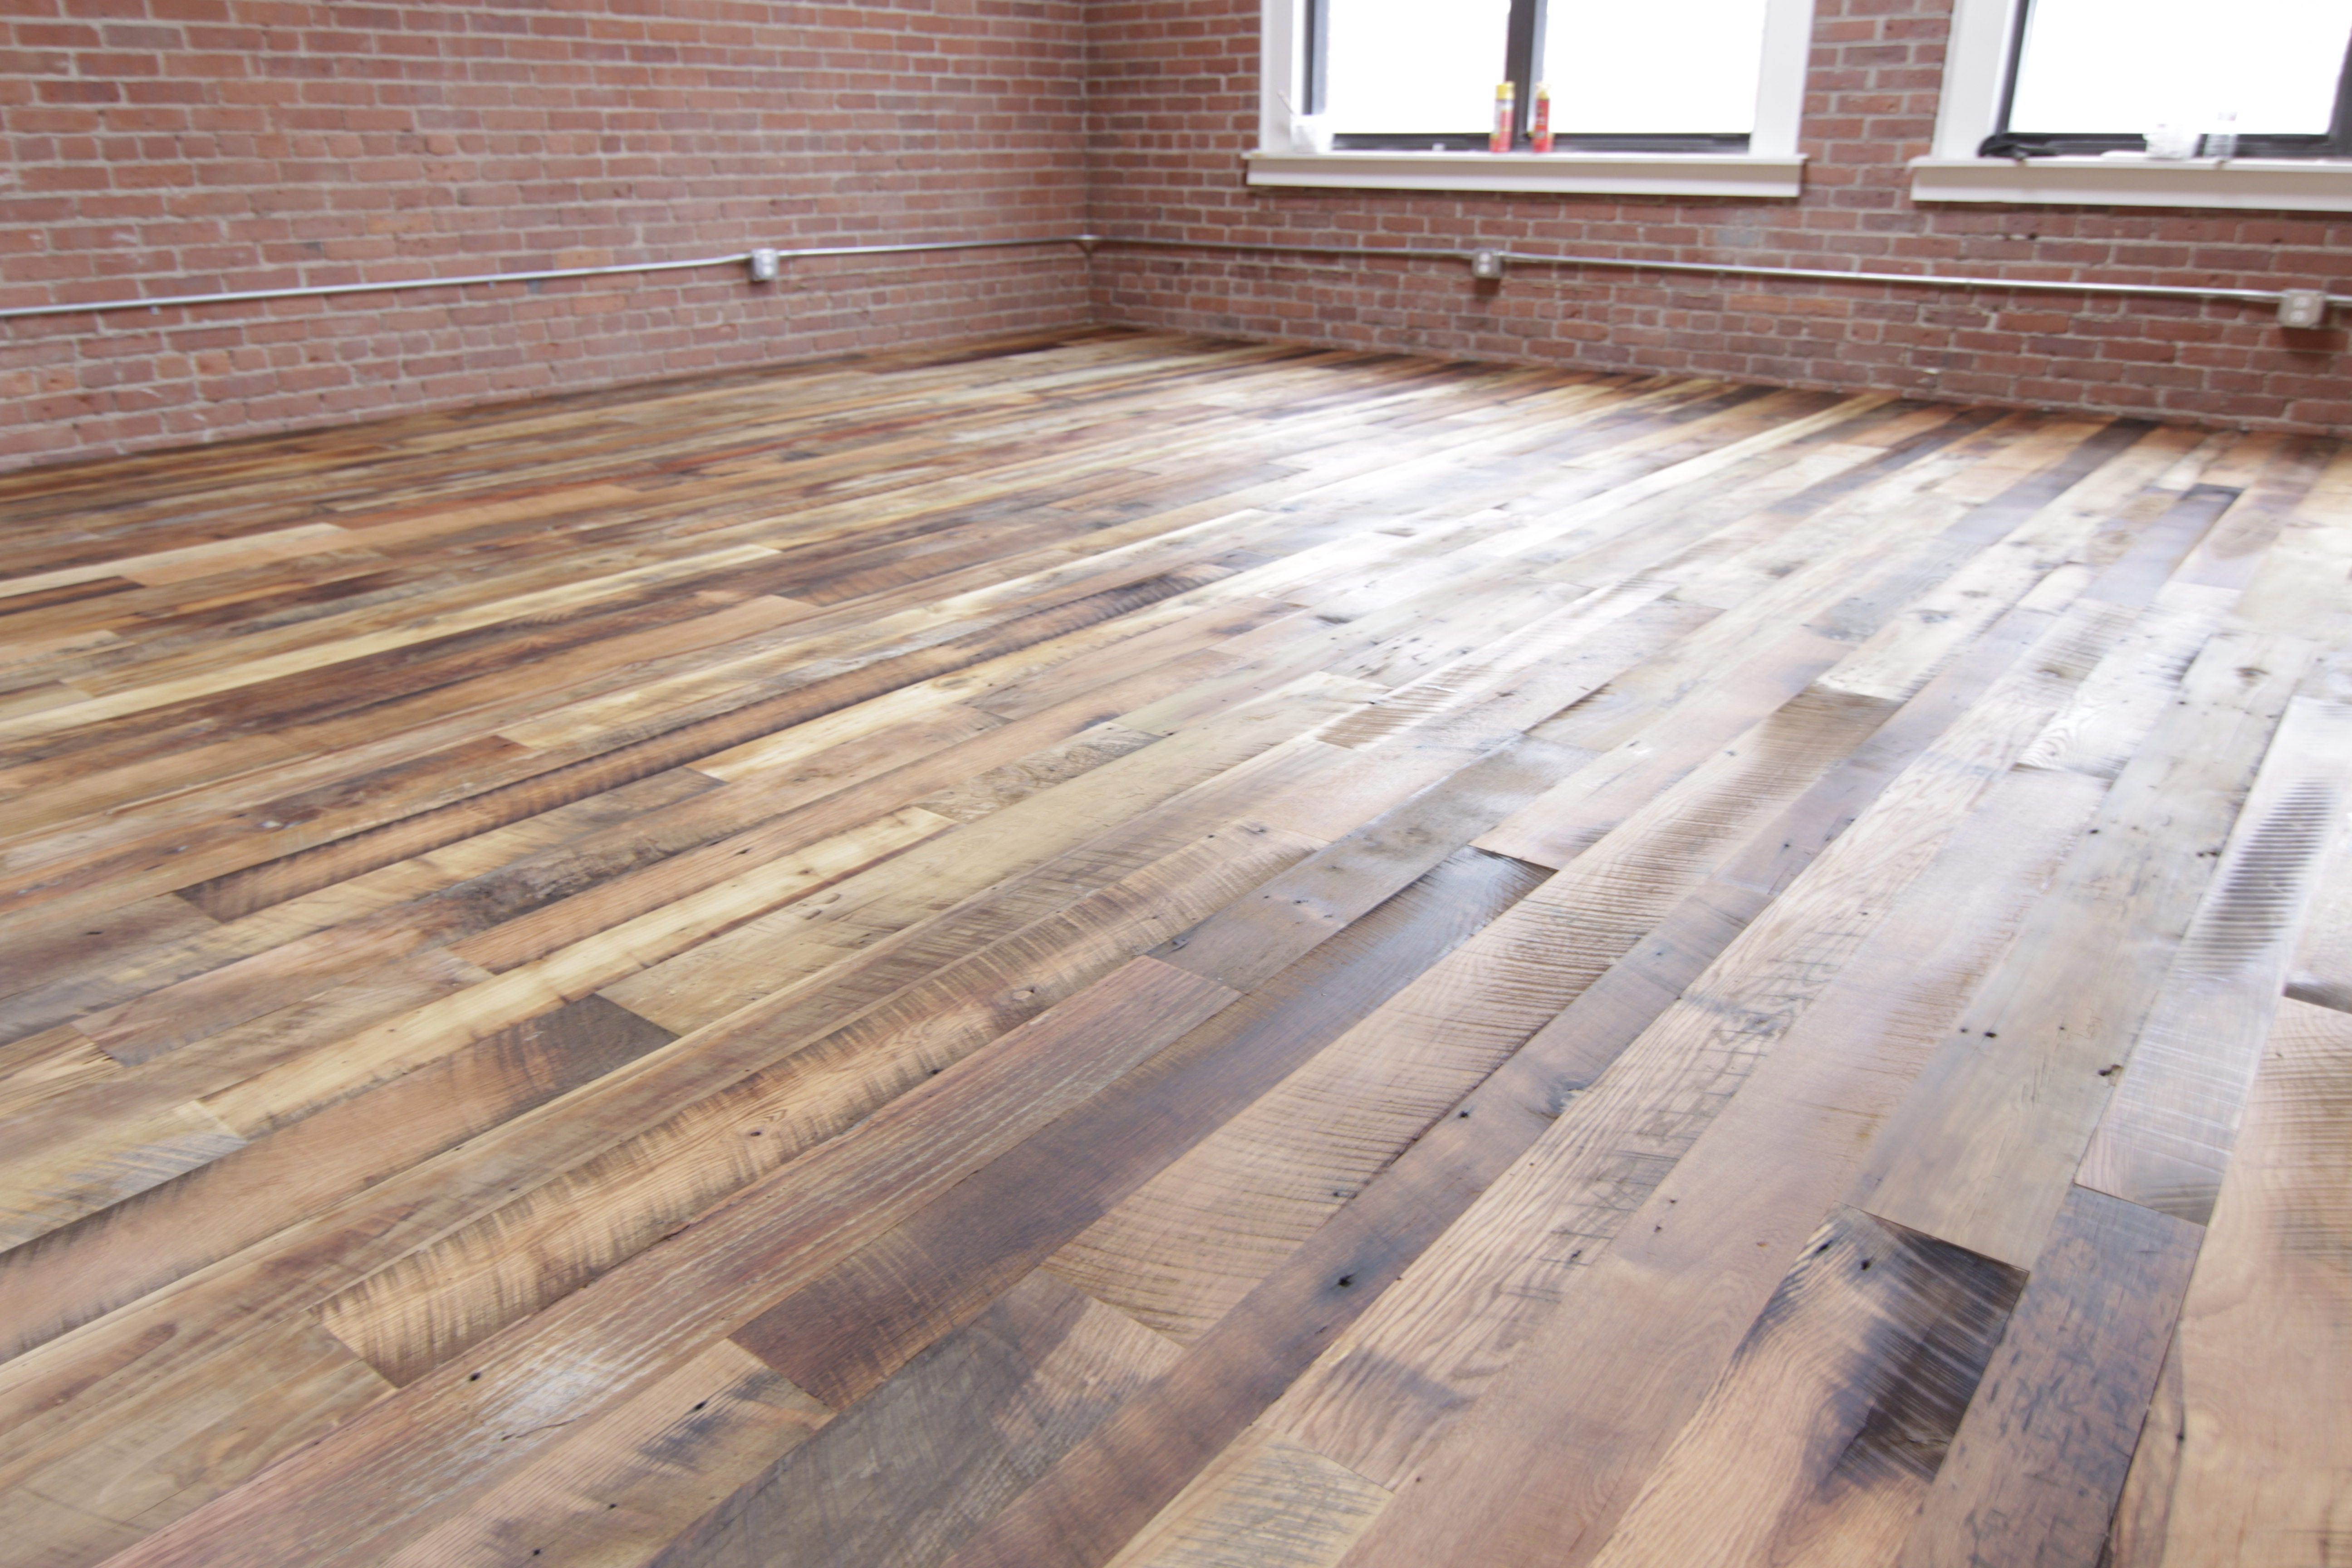 Reclaimed random width mixed specie wood floors poplar beech maple white oak red oak chestnut cherry and mahogany top coated with waterlox system